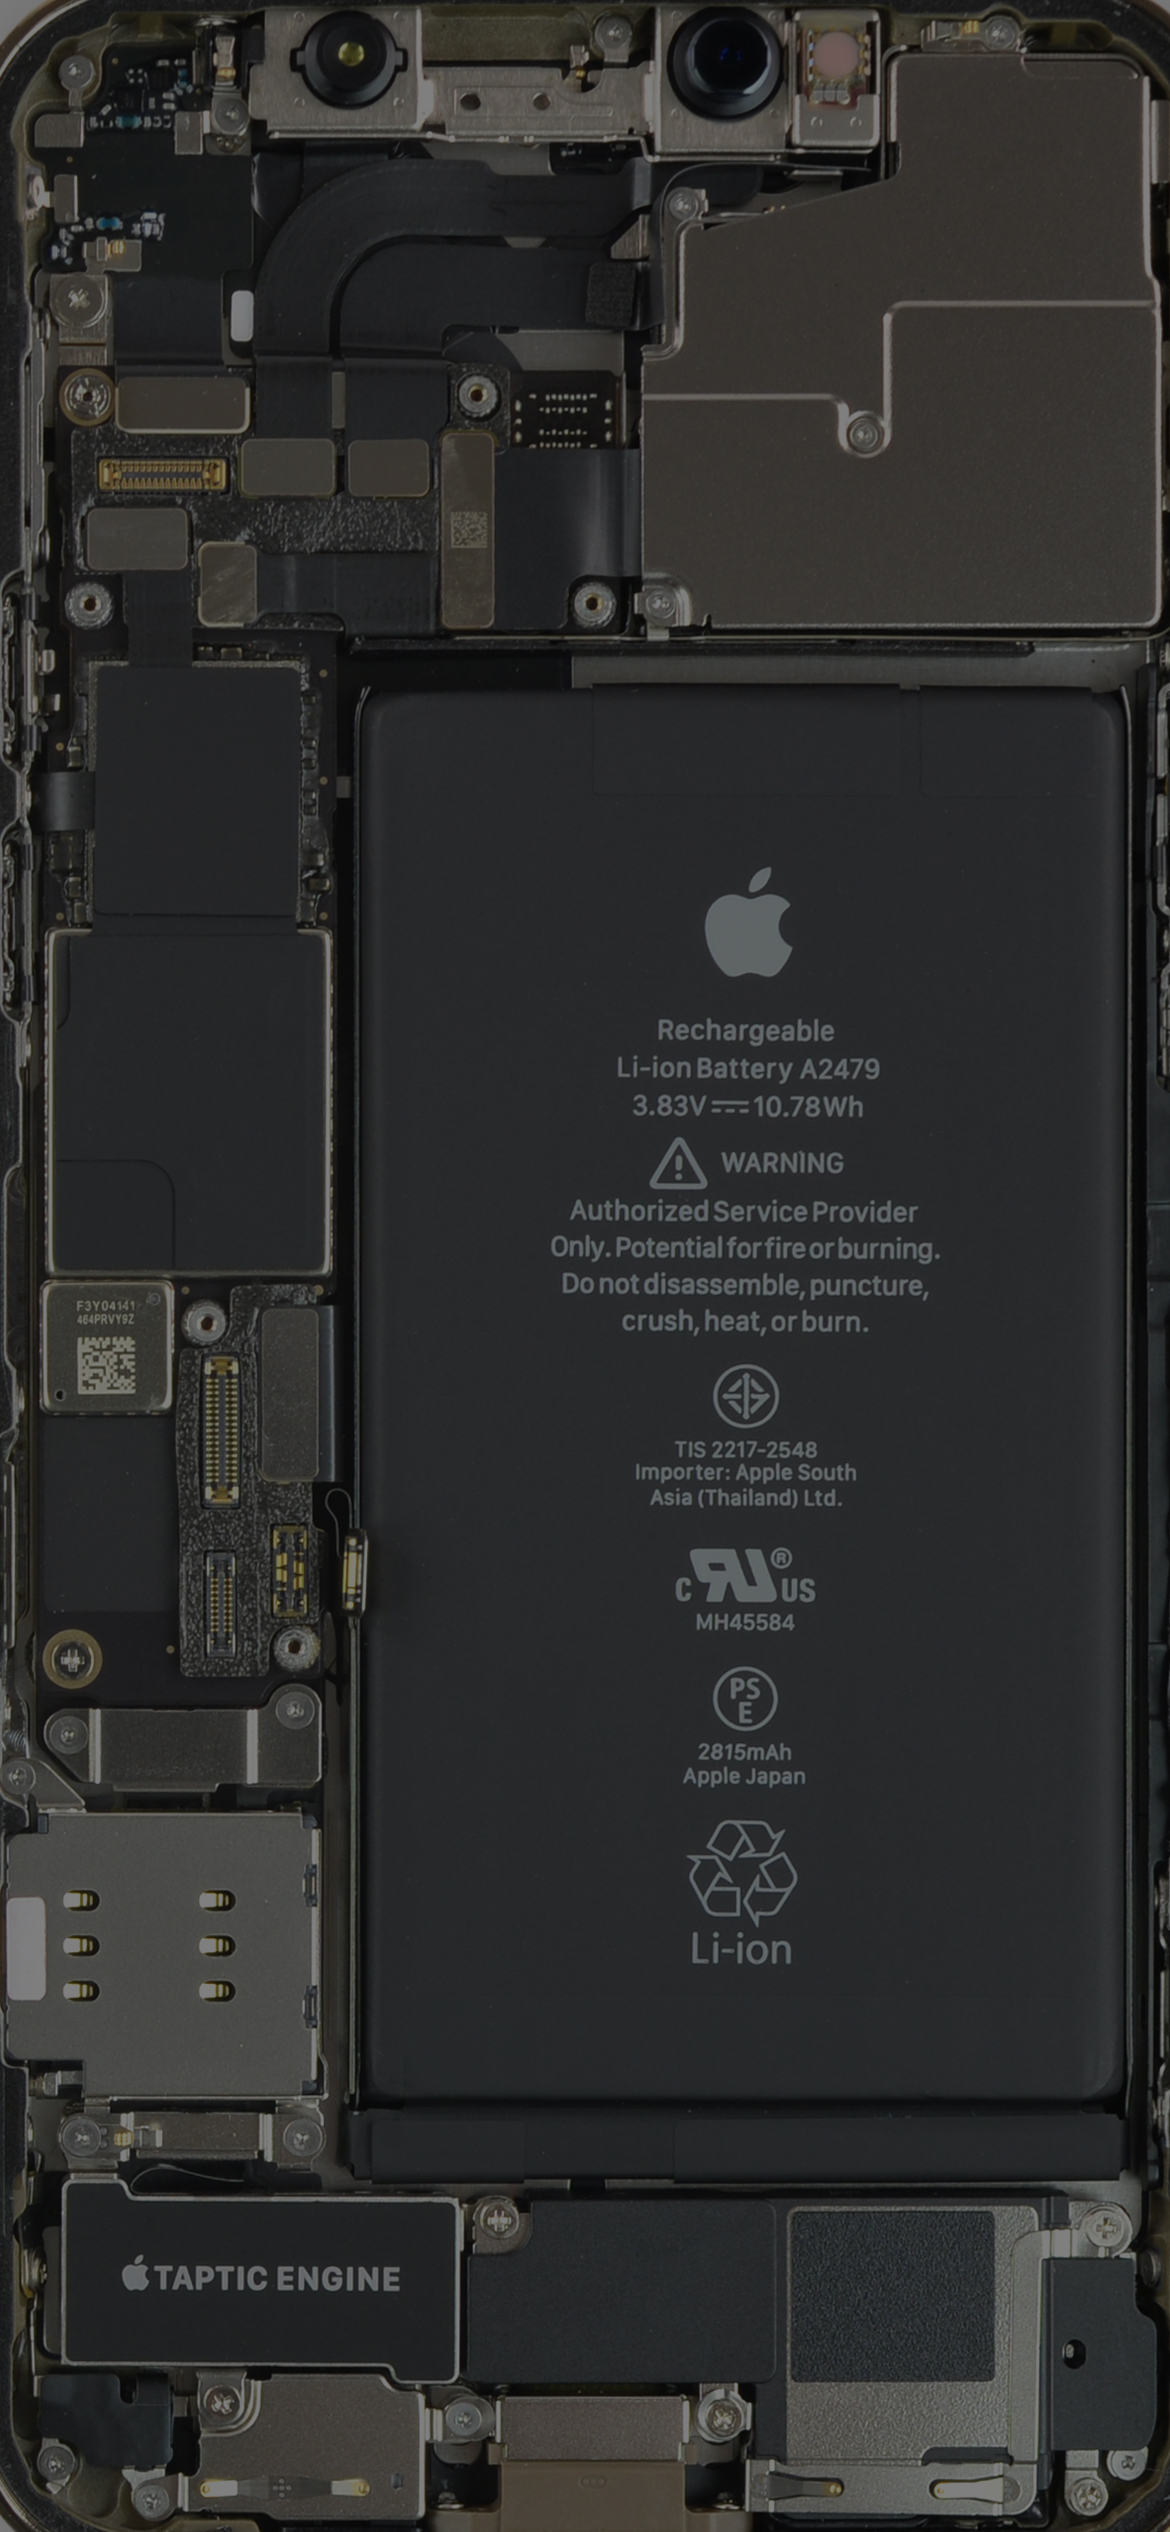 iPhone 12 Pro internals wallpaper, slightly darker mode